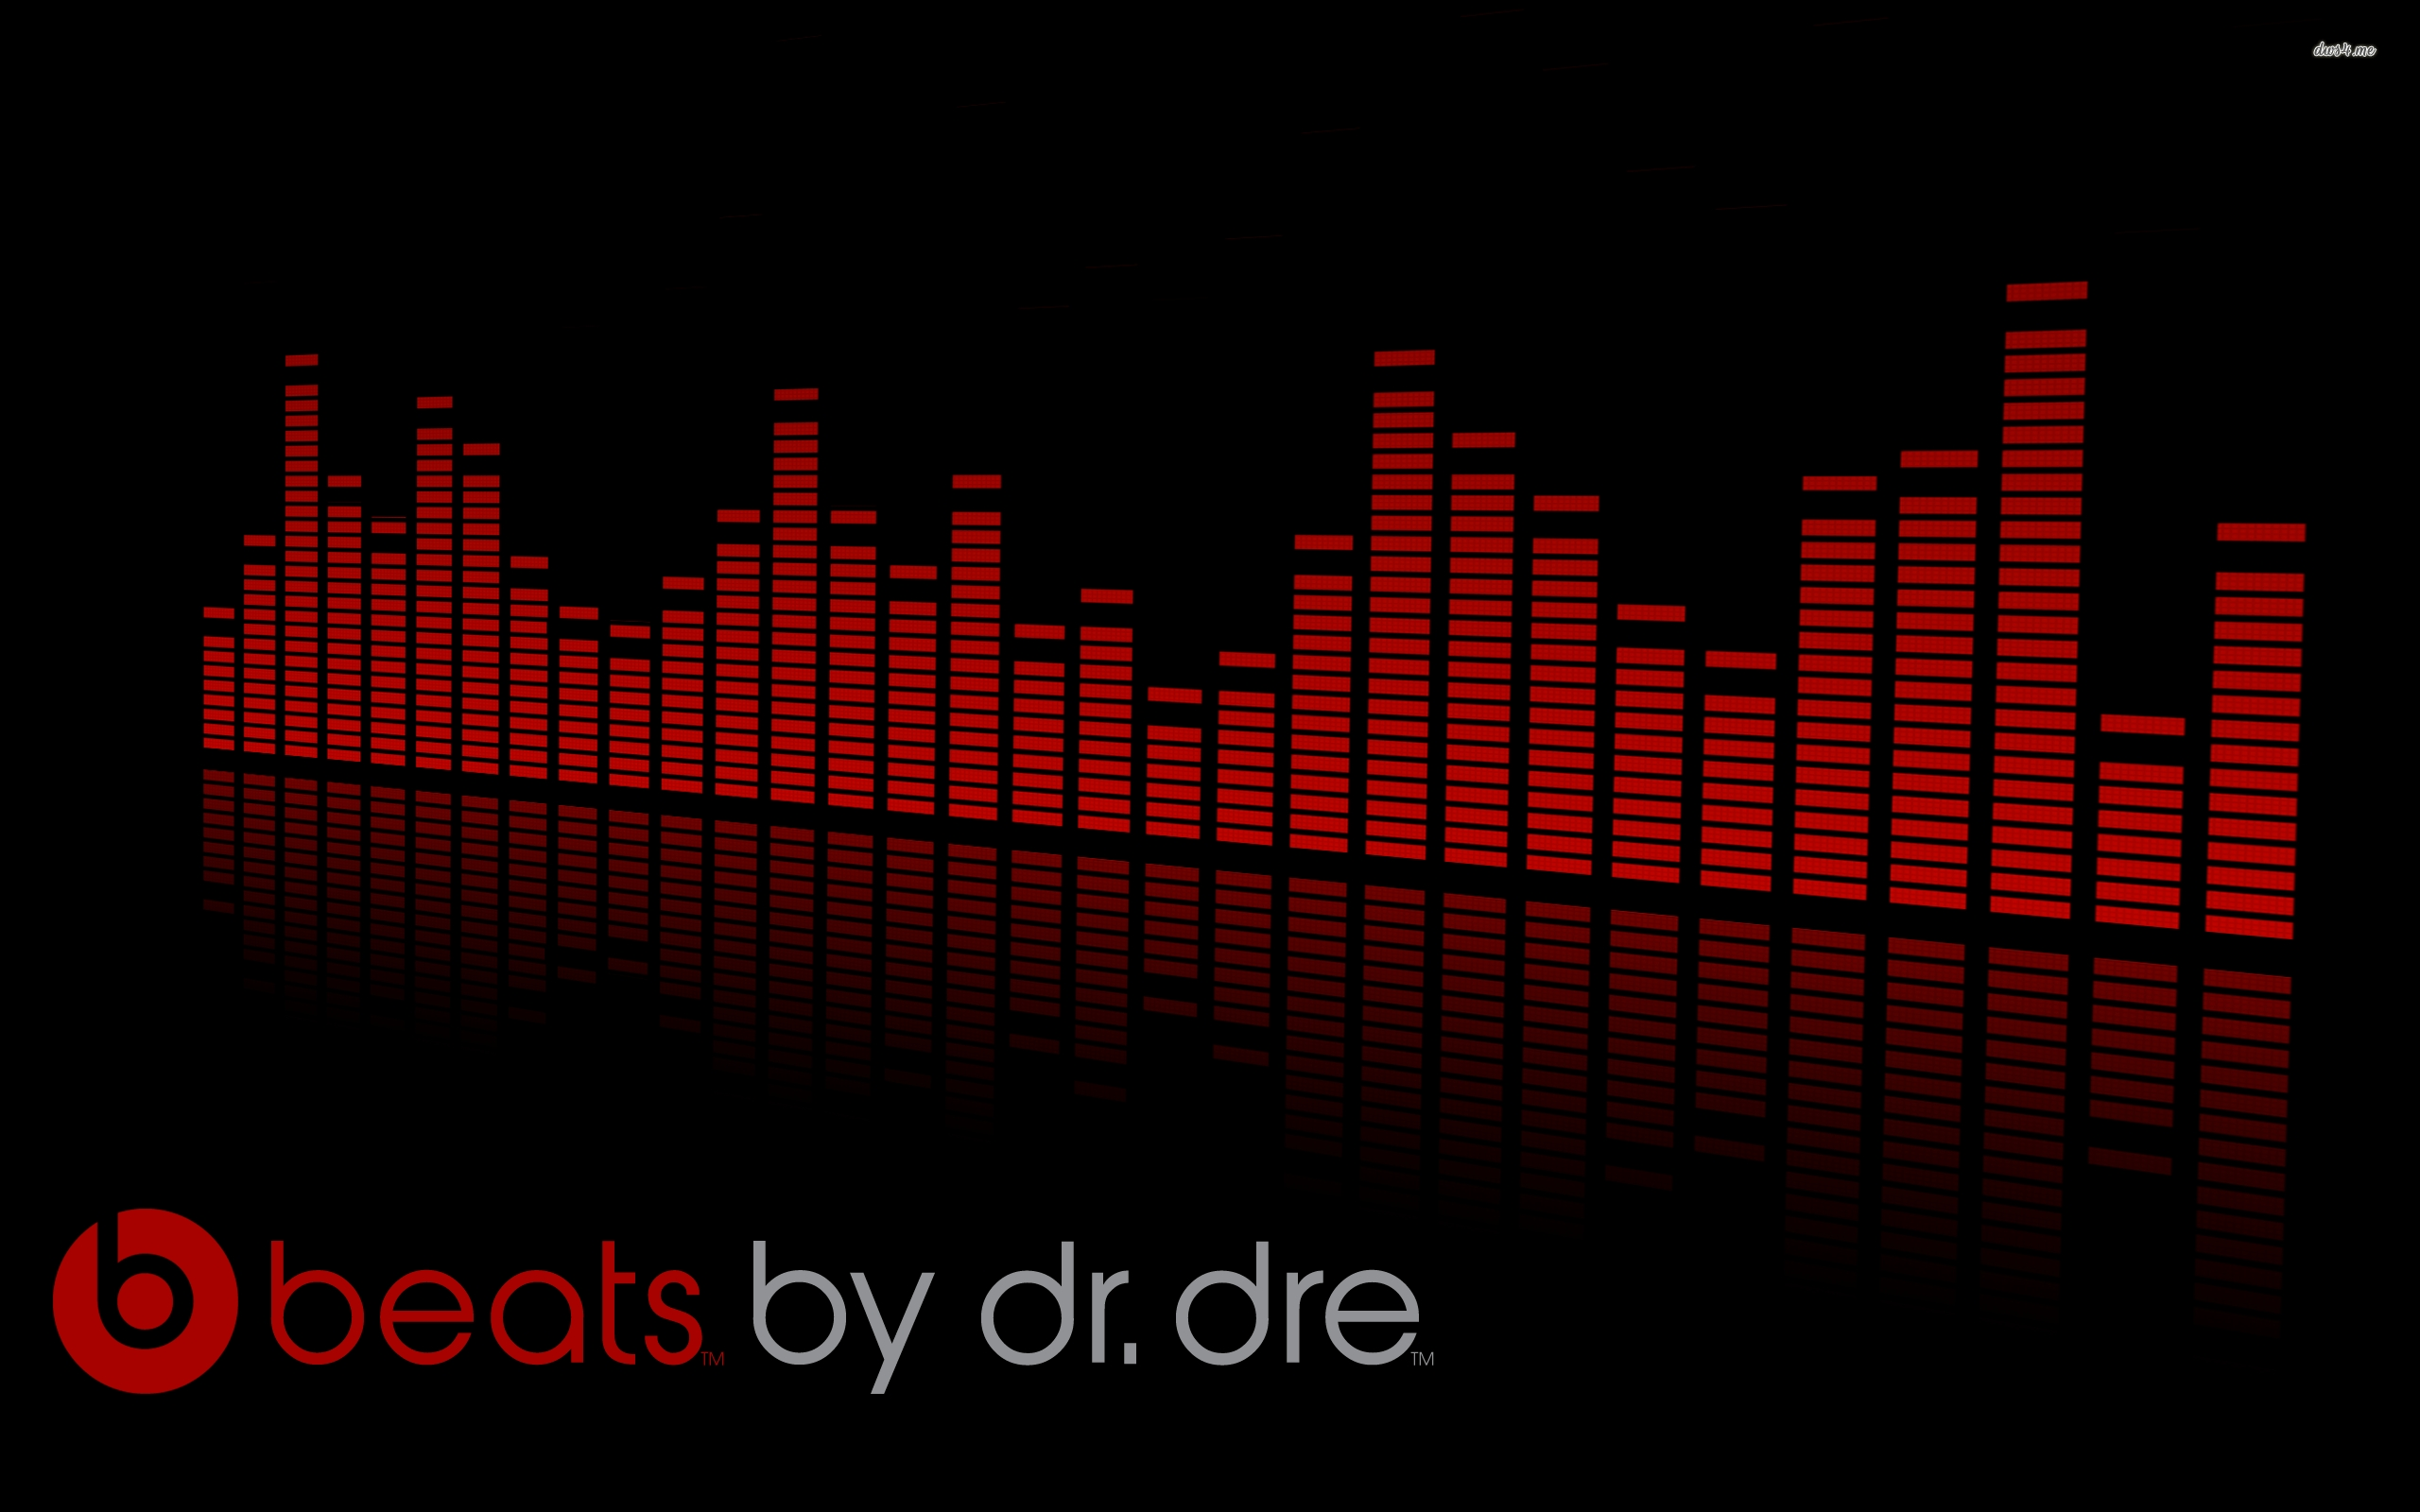 beatsdr. dre wallpapers - wallpaper cave